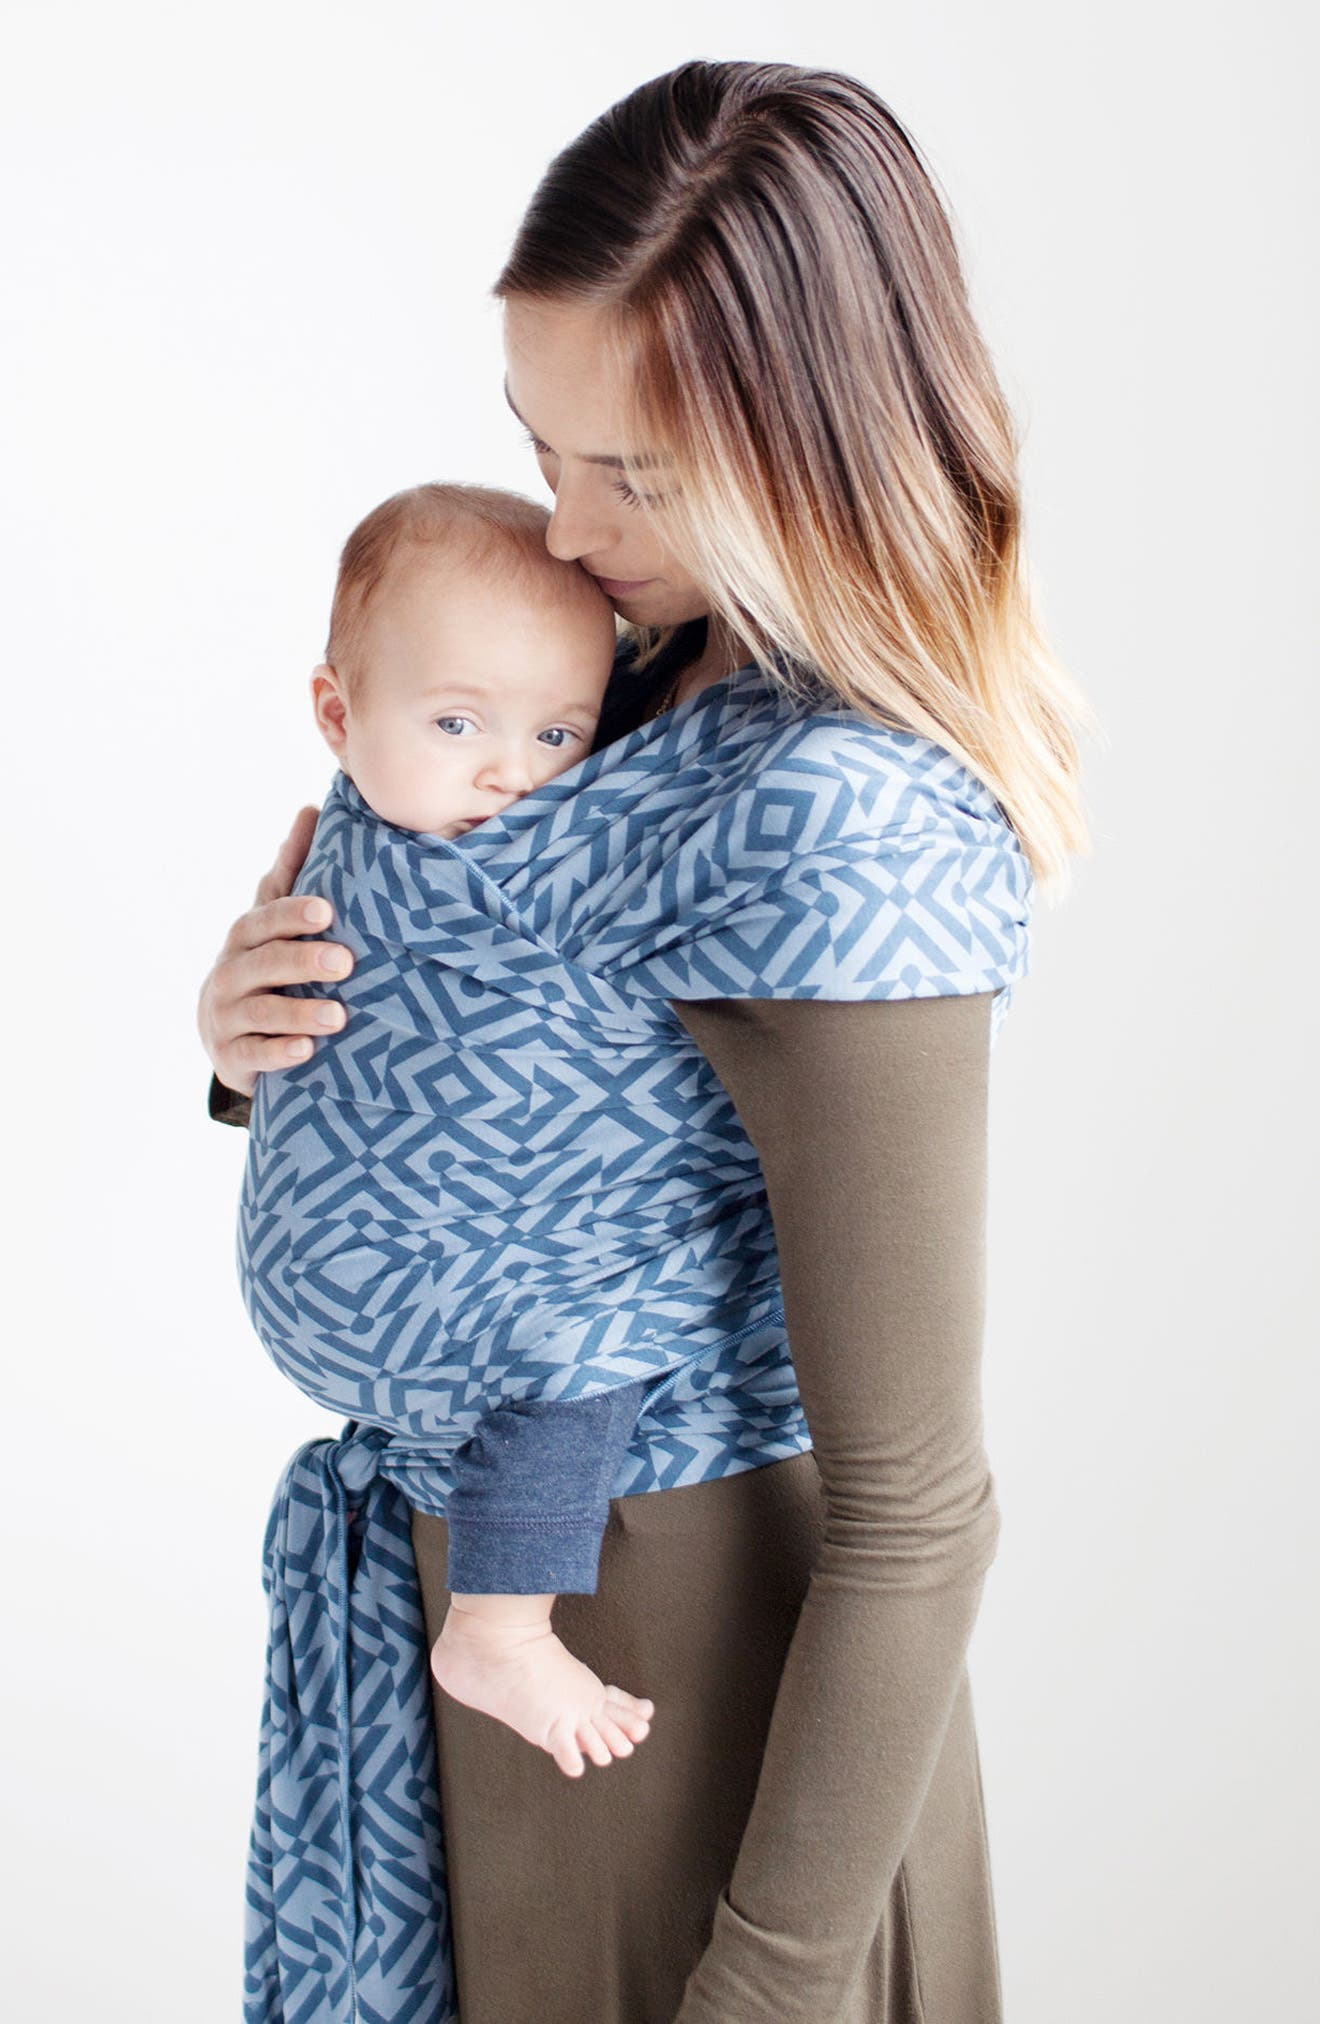 Main Image - Moby Wrap x Petunia Pickle Bottom Baby Carrier